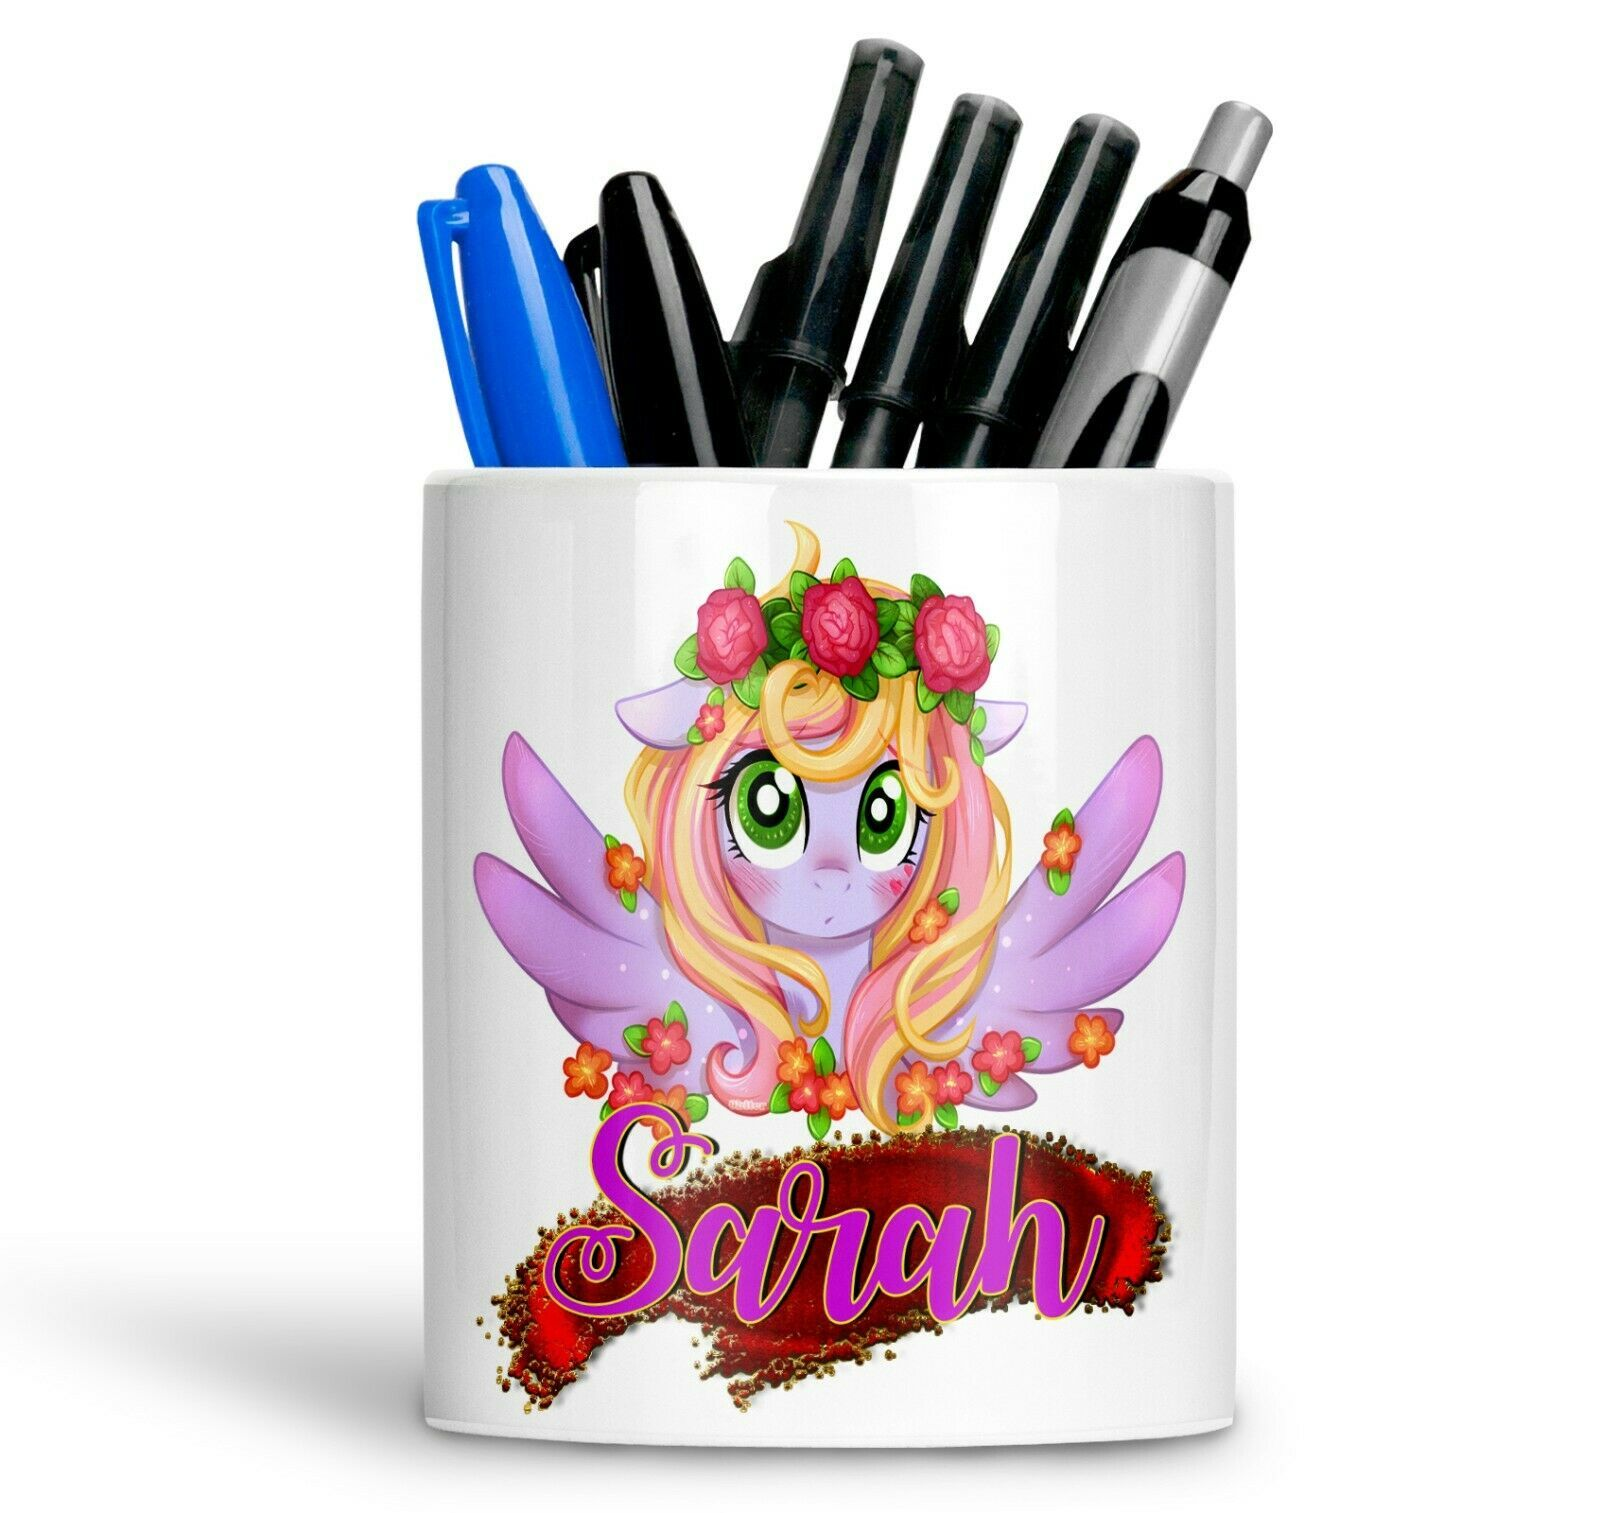 Primary image for Personalised Any Text Name Ceramic Ponny Pencil Pot Gift Idea Kids Adults 50